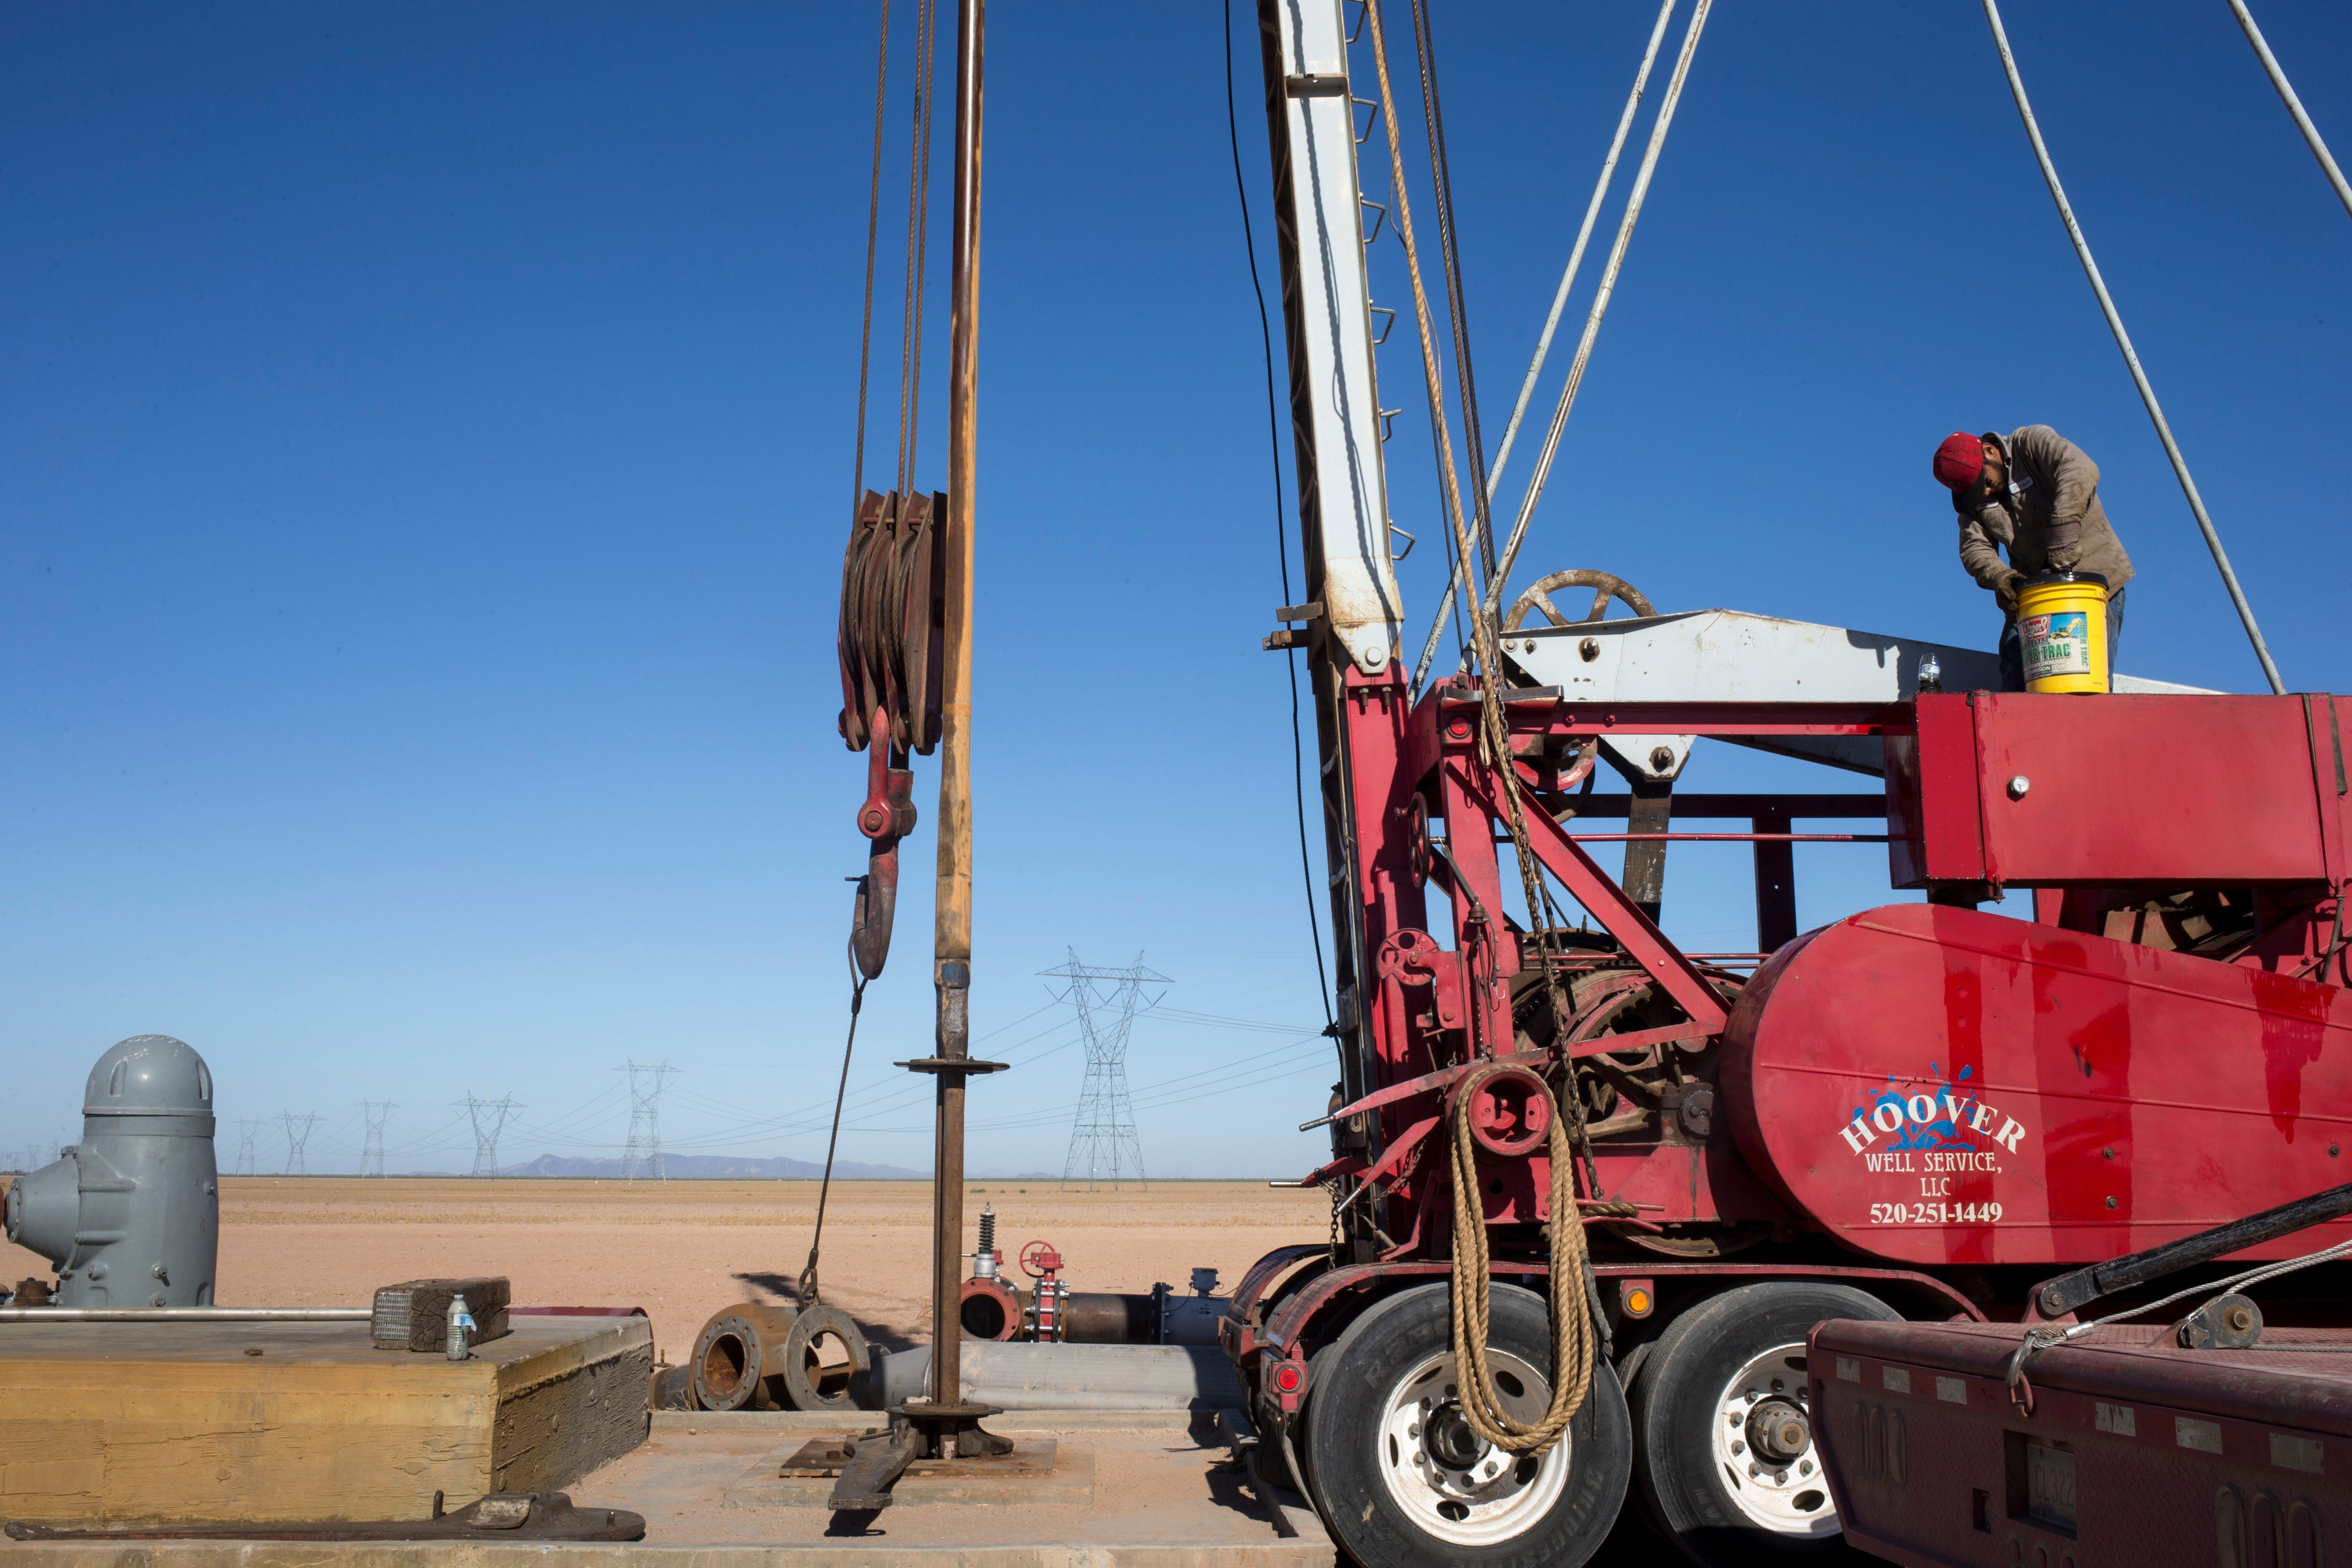 Freddie Sovero of Hoover Drilling Co. fills his drilling rig with fuel while working on a well near Hyder.